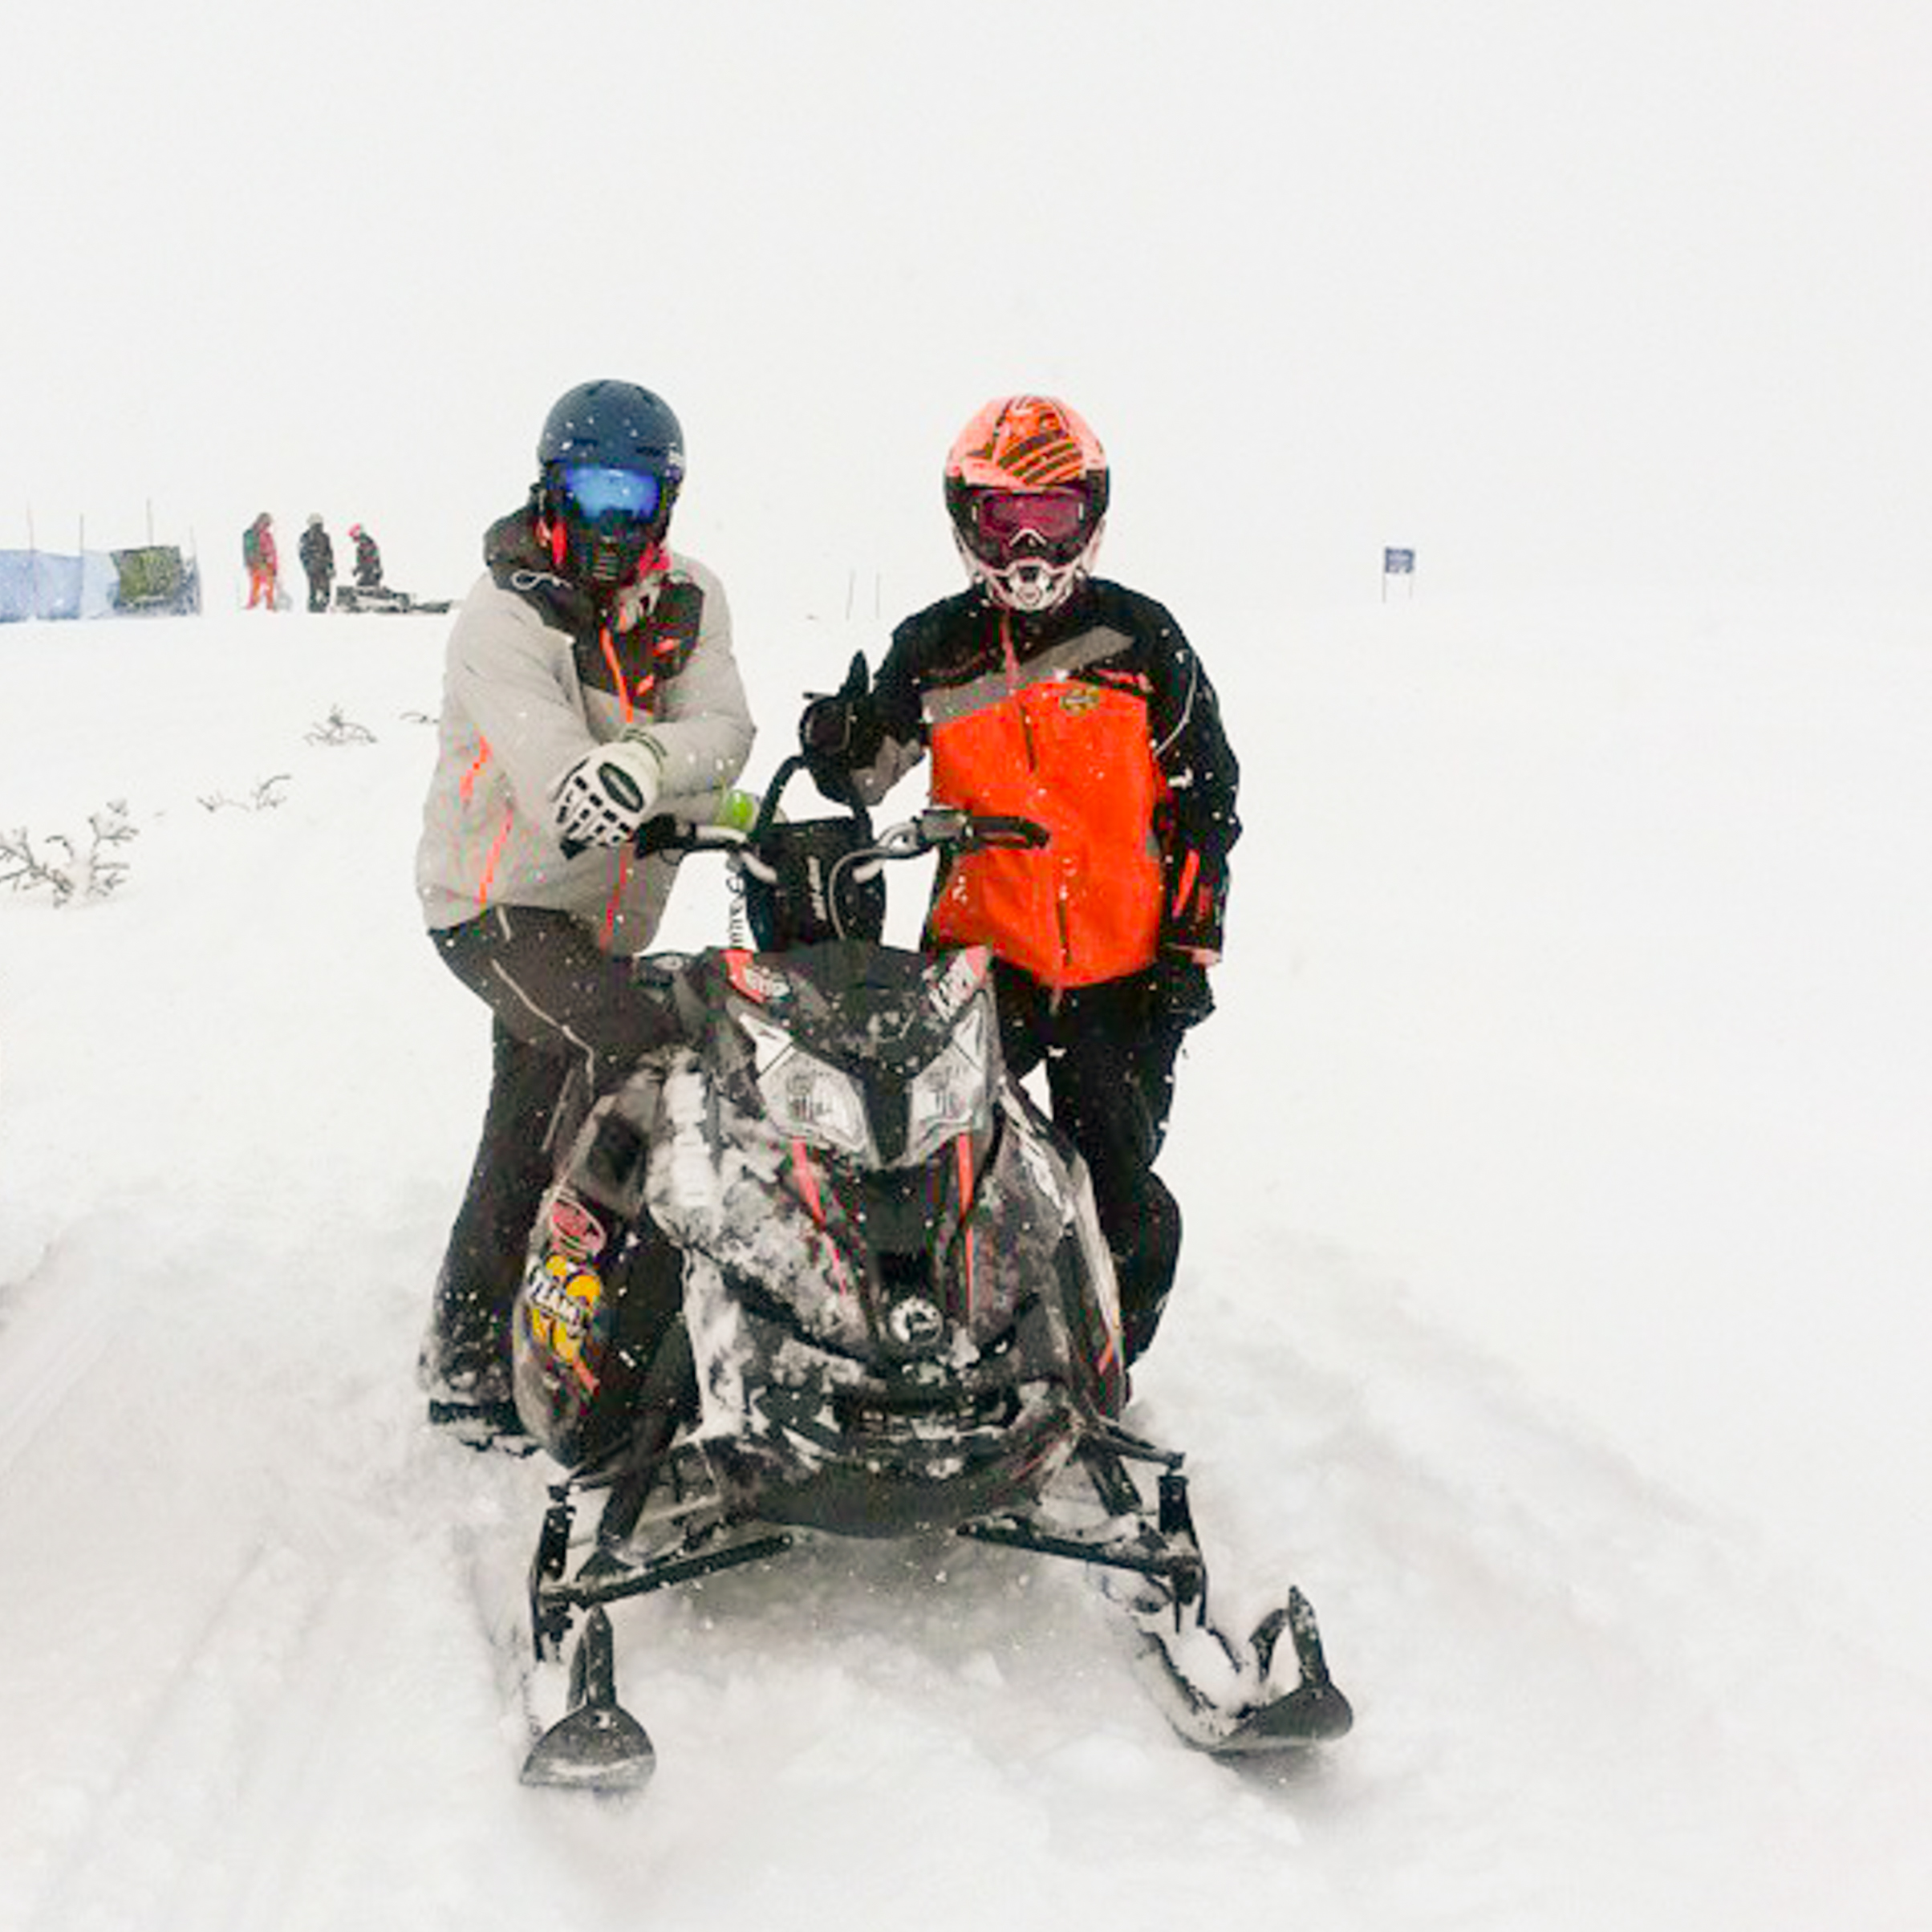 Steve Nyman, Worldcup downhill skier and Luc Karpik at ArcticMan Race in AK